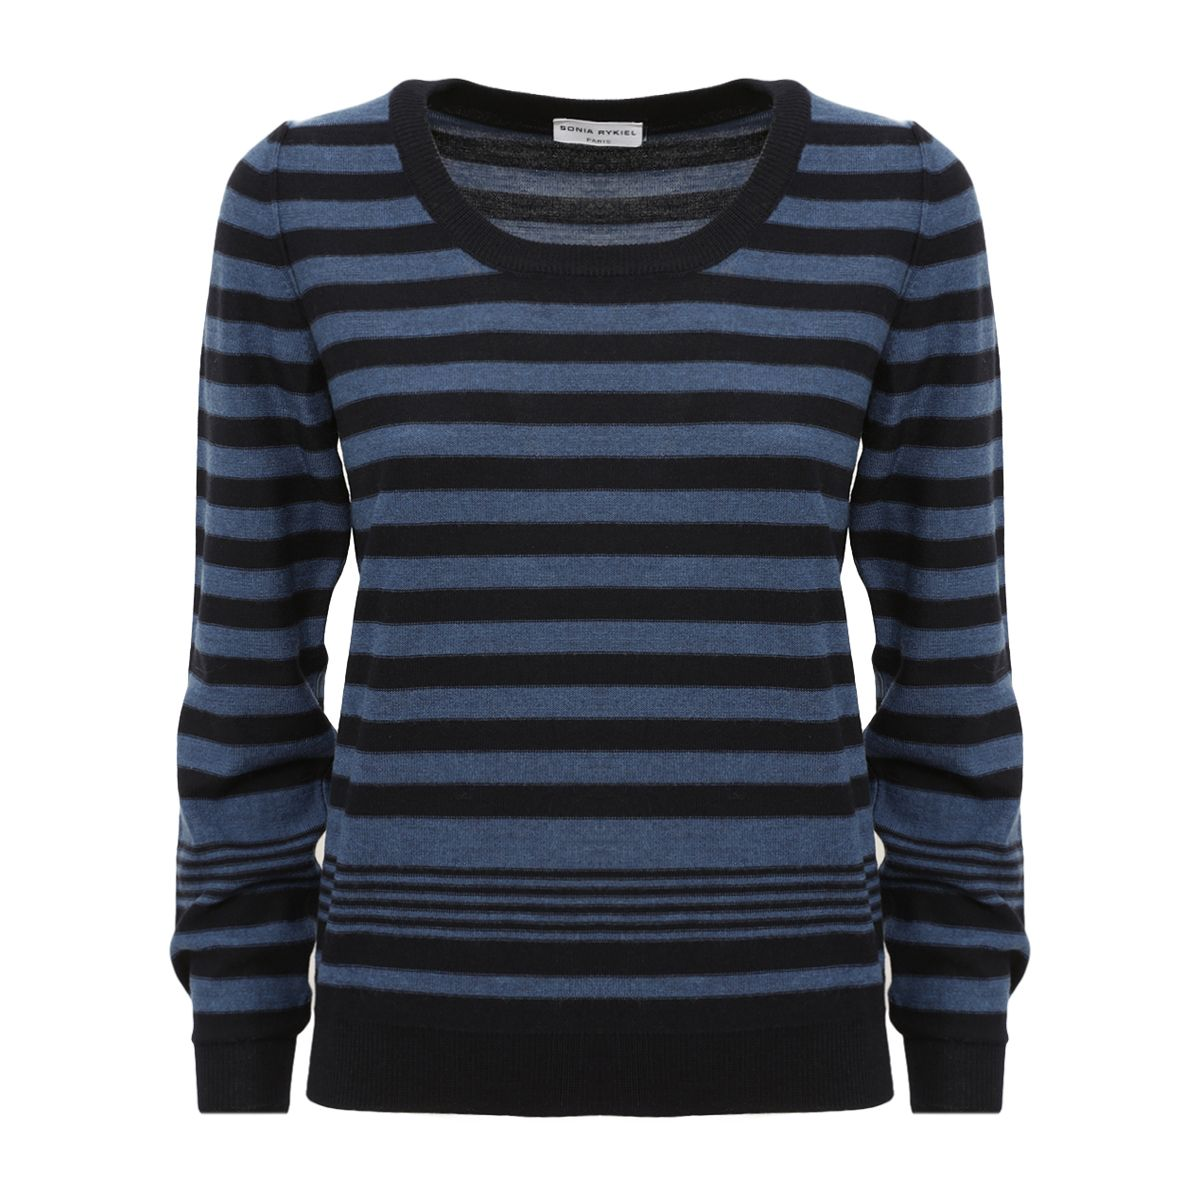 Sonia Rykiel Striped Fitted Sweater